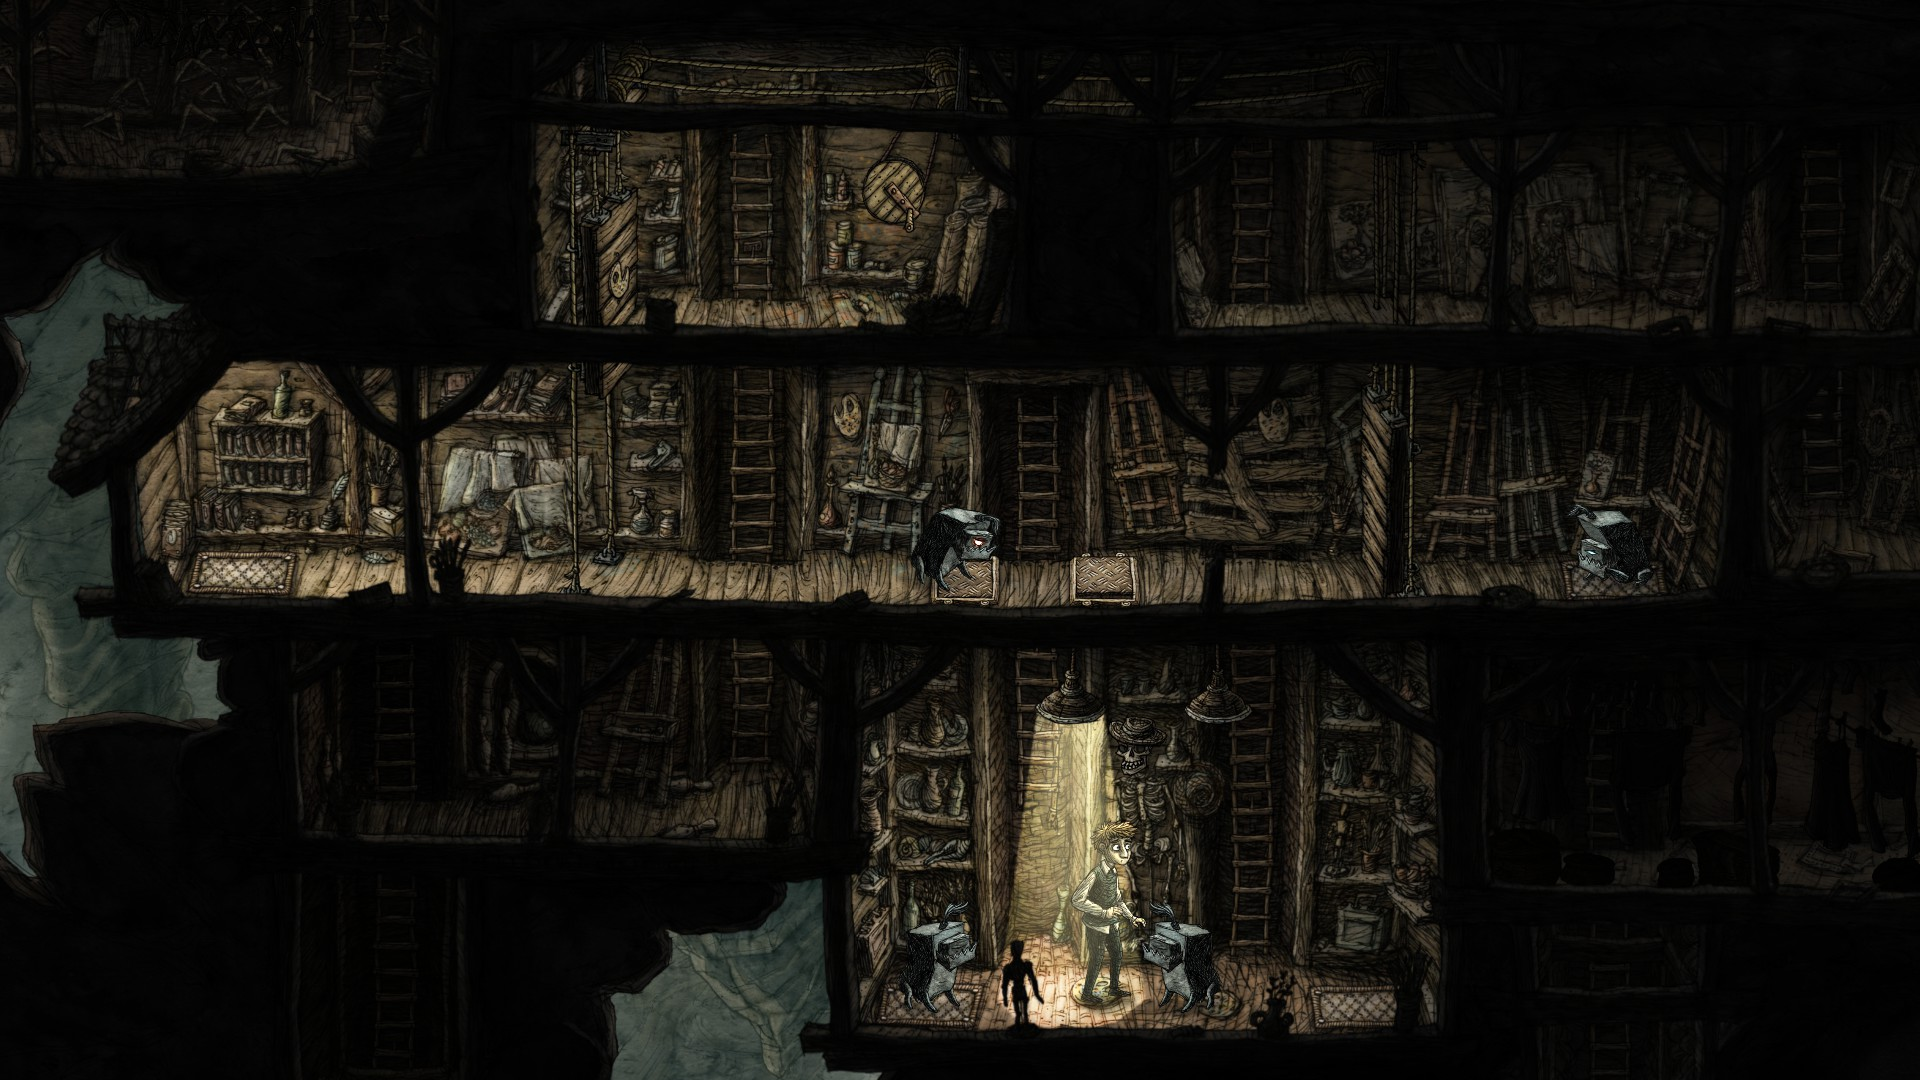 The player character stands under another cieling light, but this time surrounded by dogs, with more on the floor above. He is trapped.